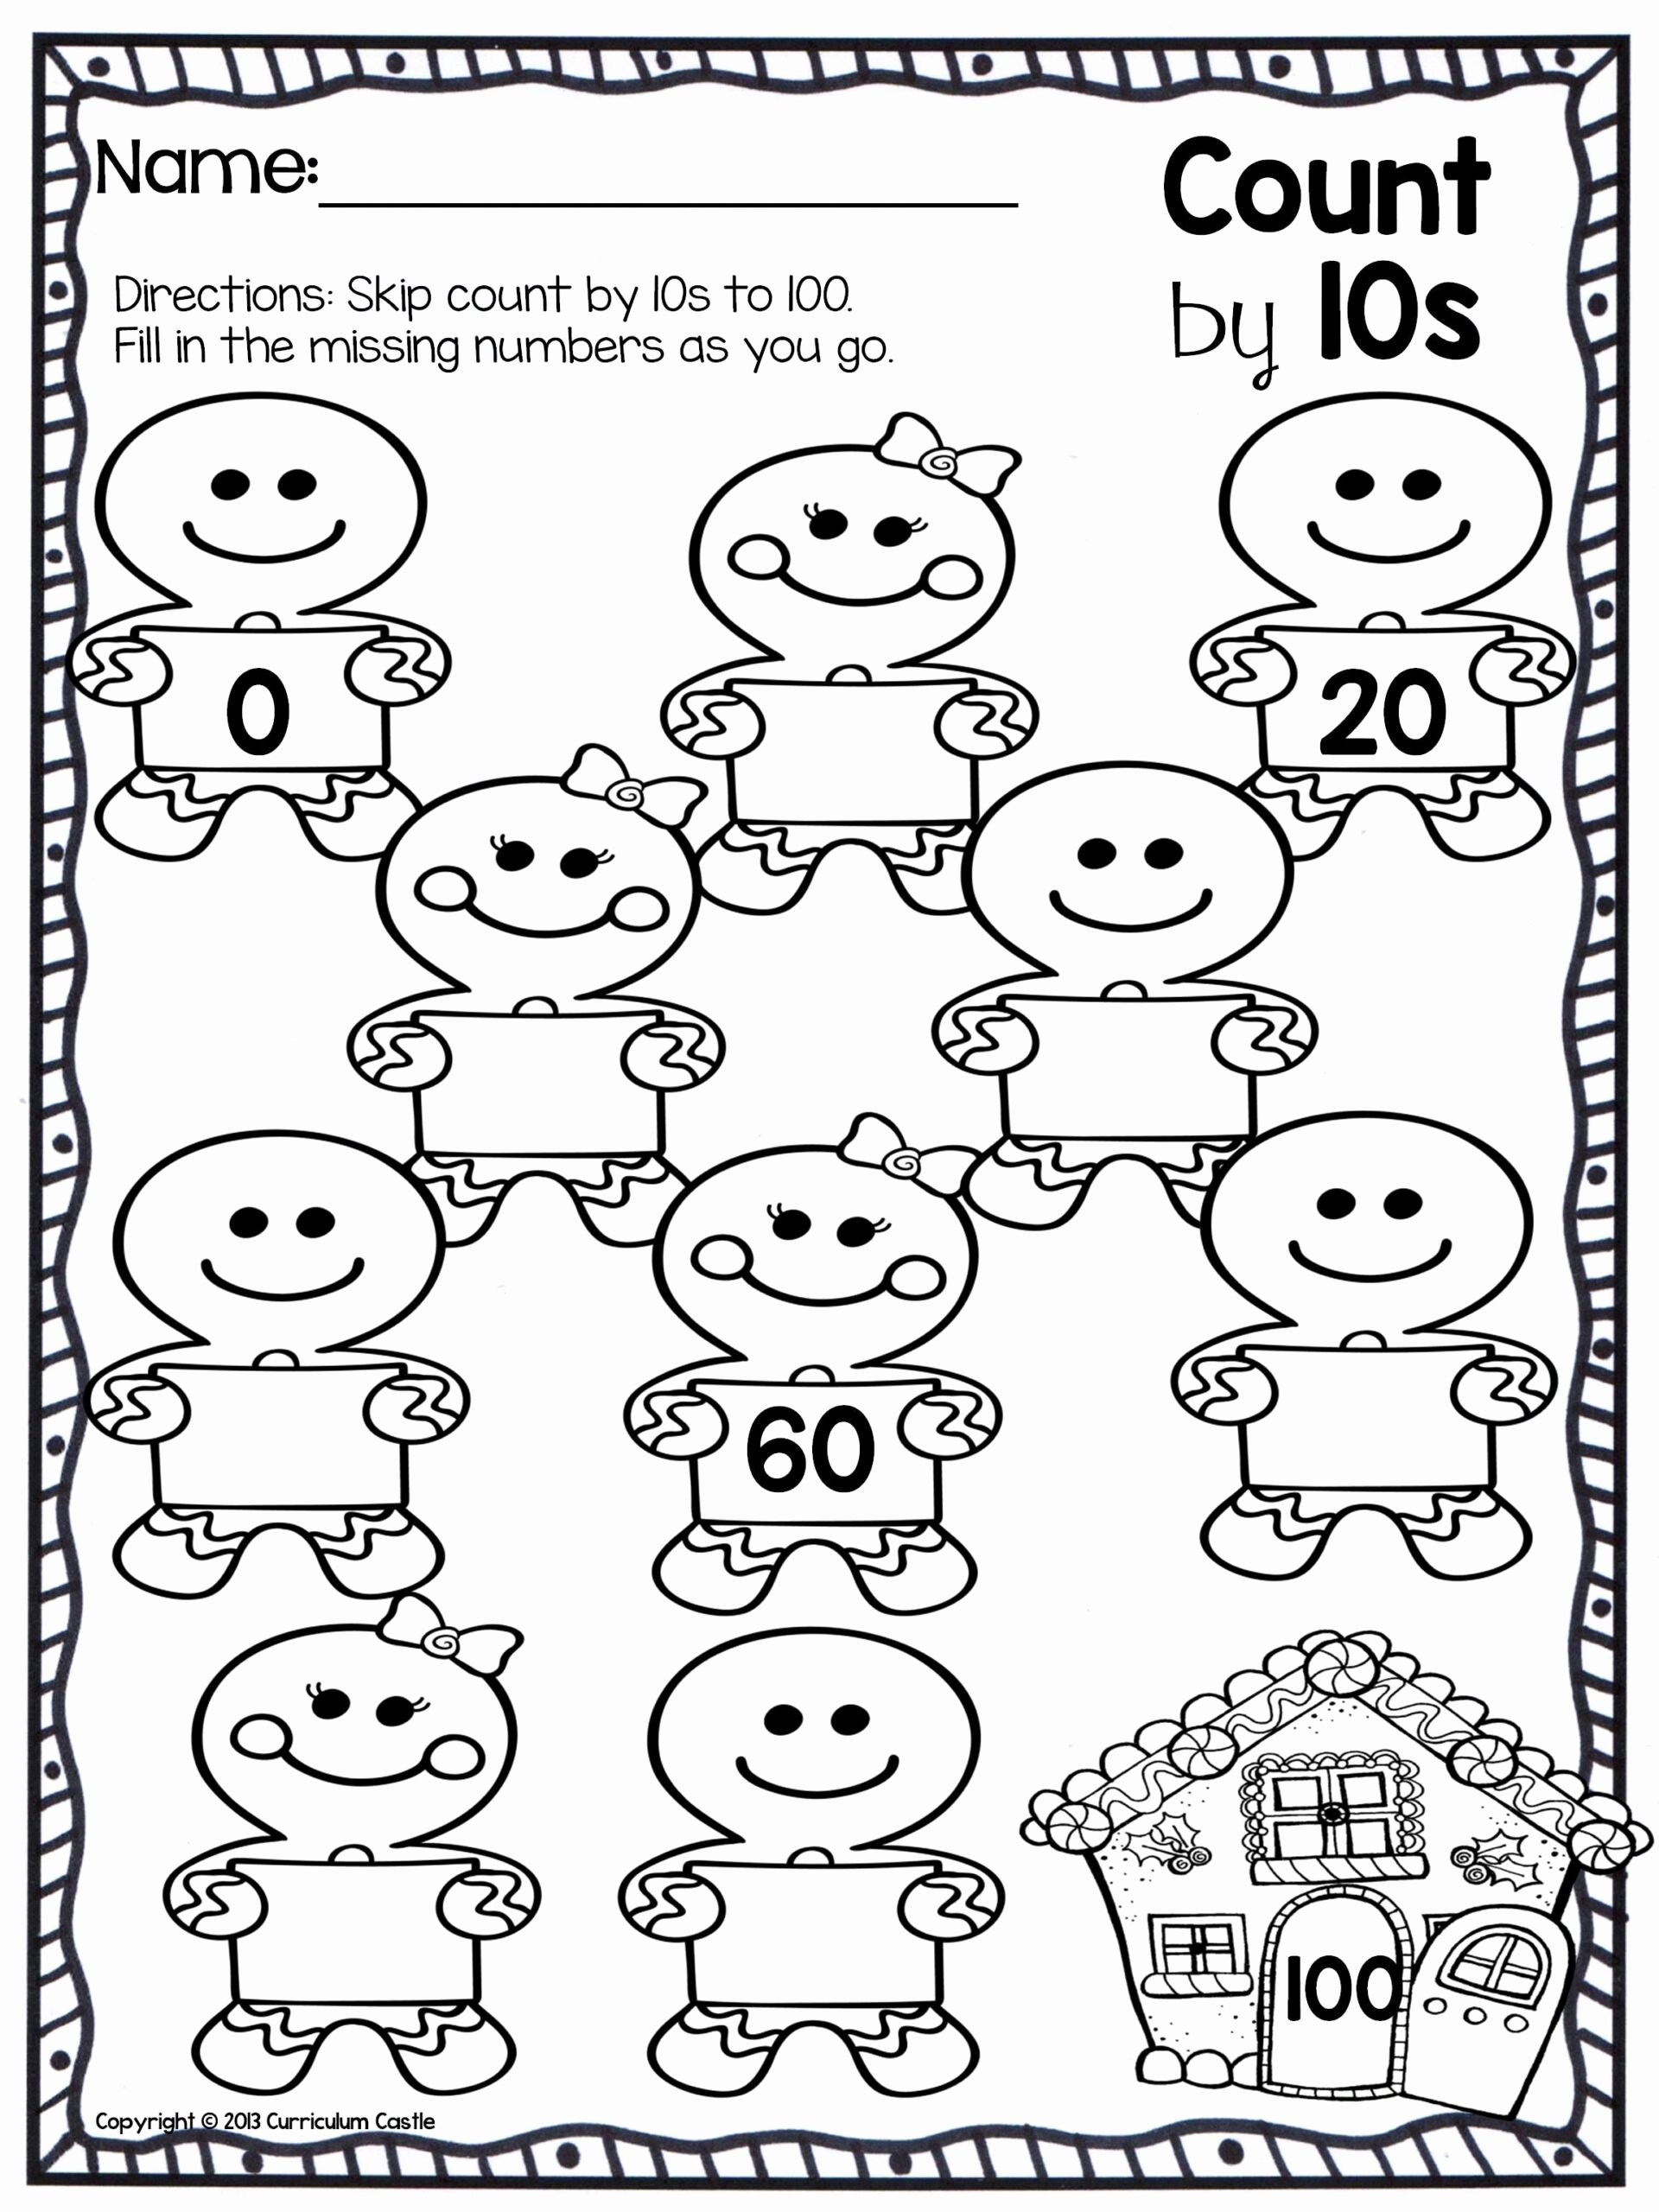 Counting Worksheets for Preschoolers Printable Christmas Counting Worksheets Printable and Math Worksheets